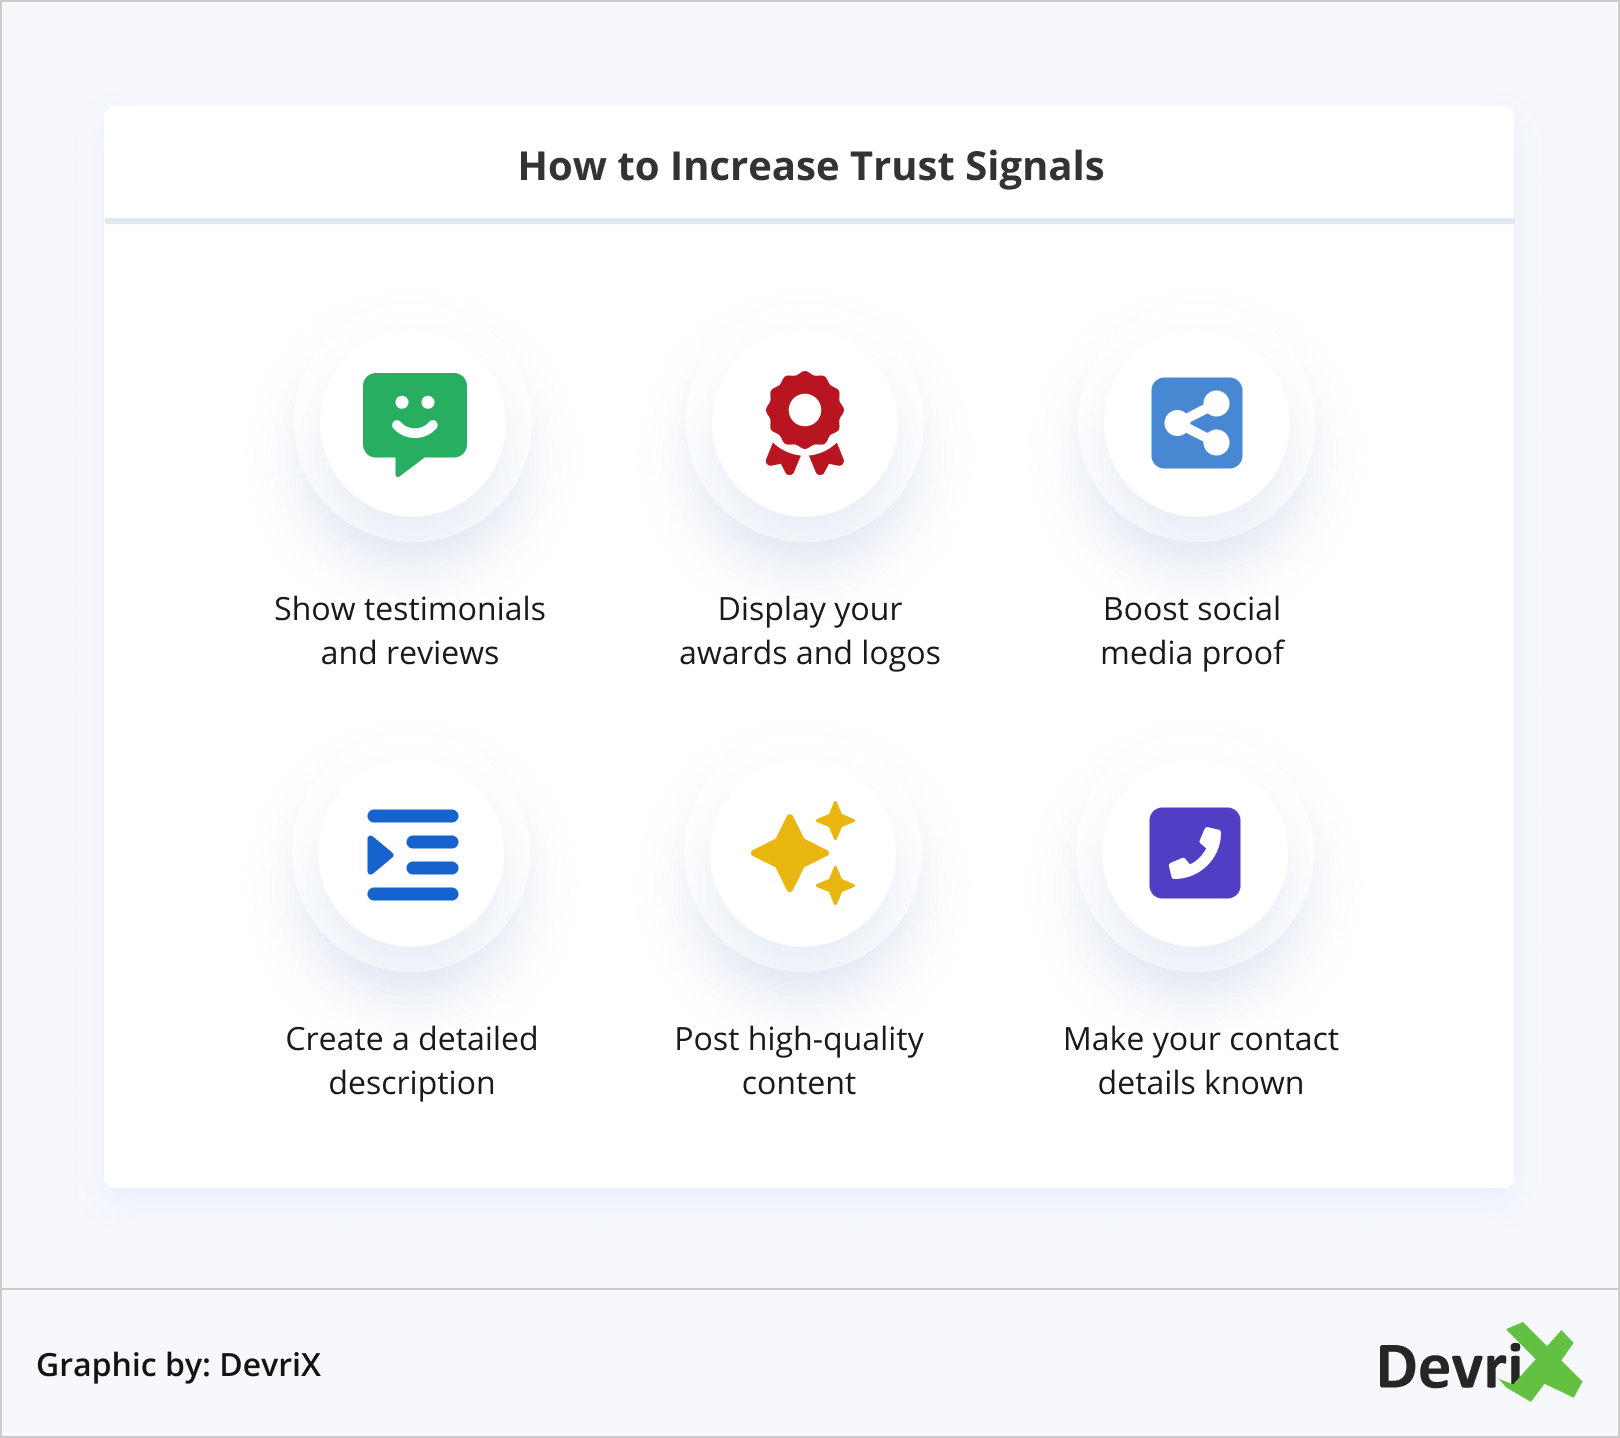 How to Increase Trust Signals